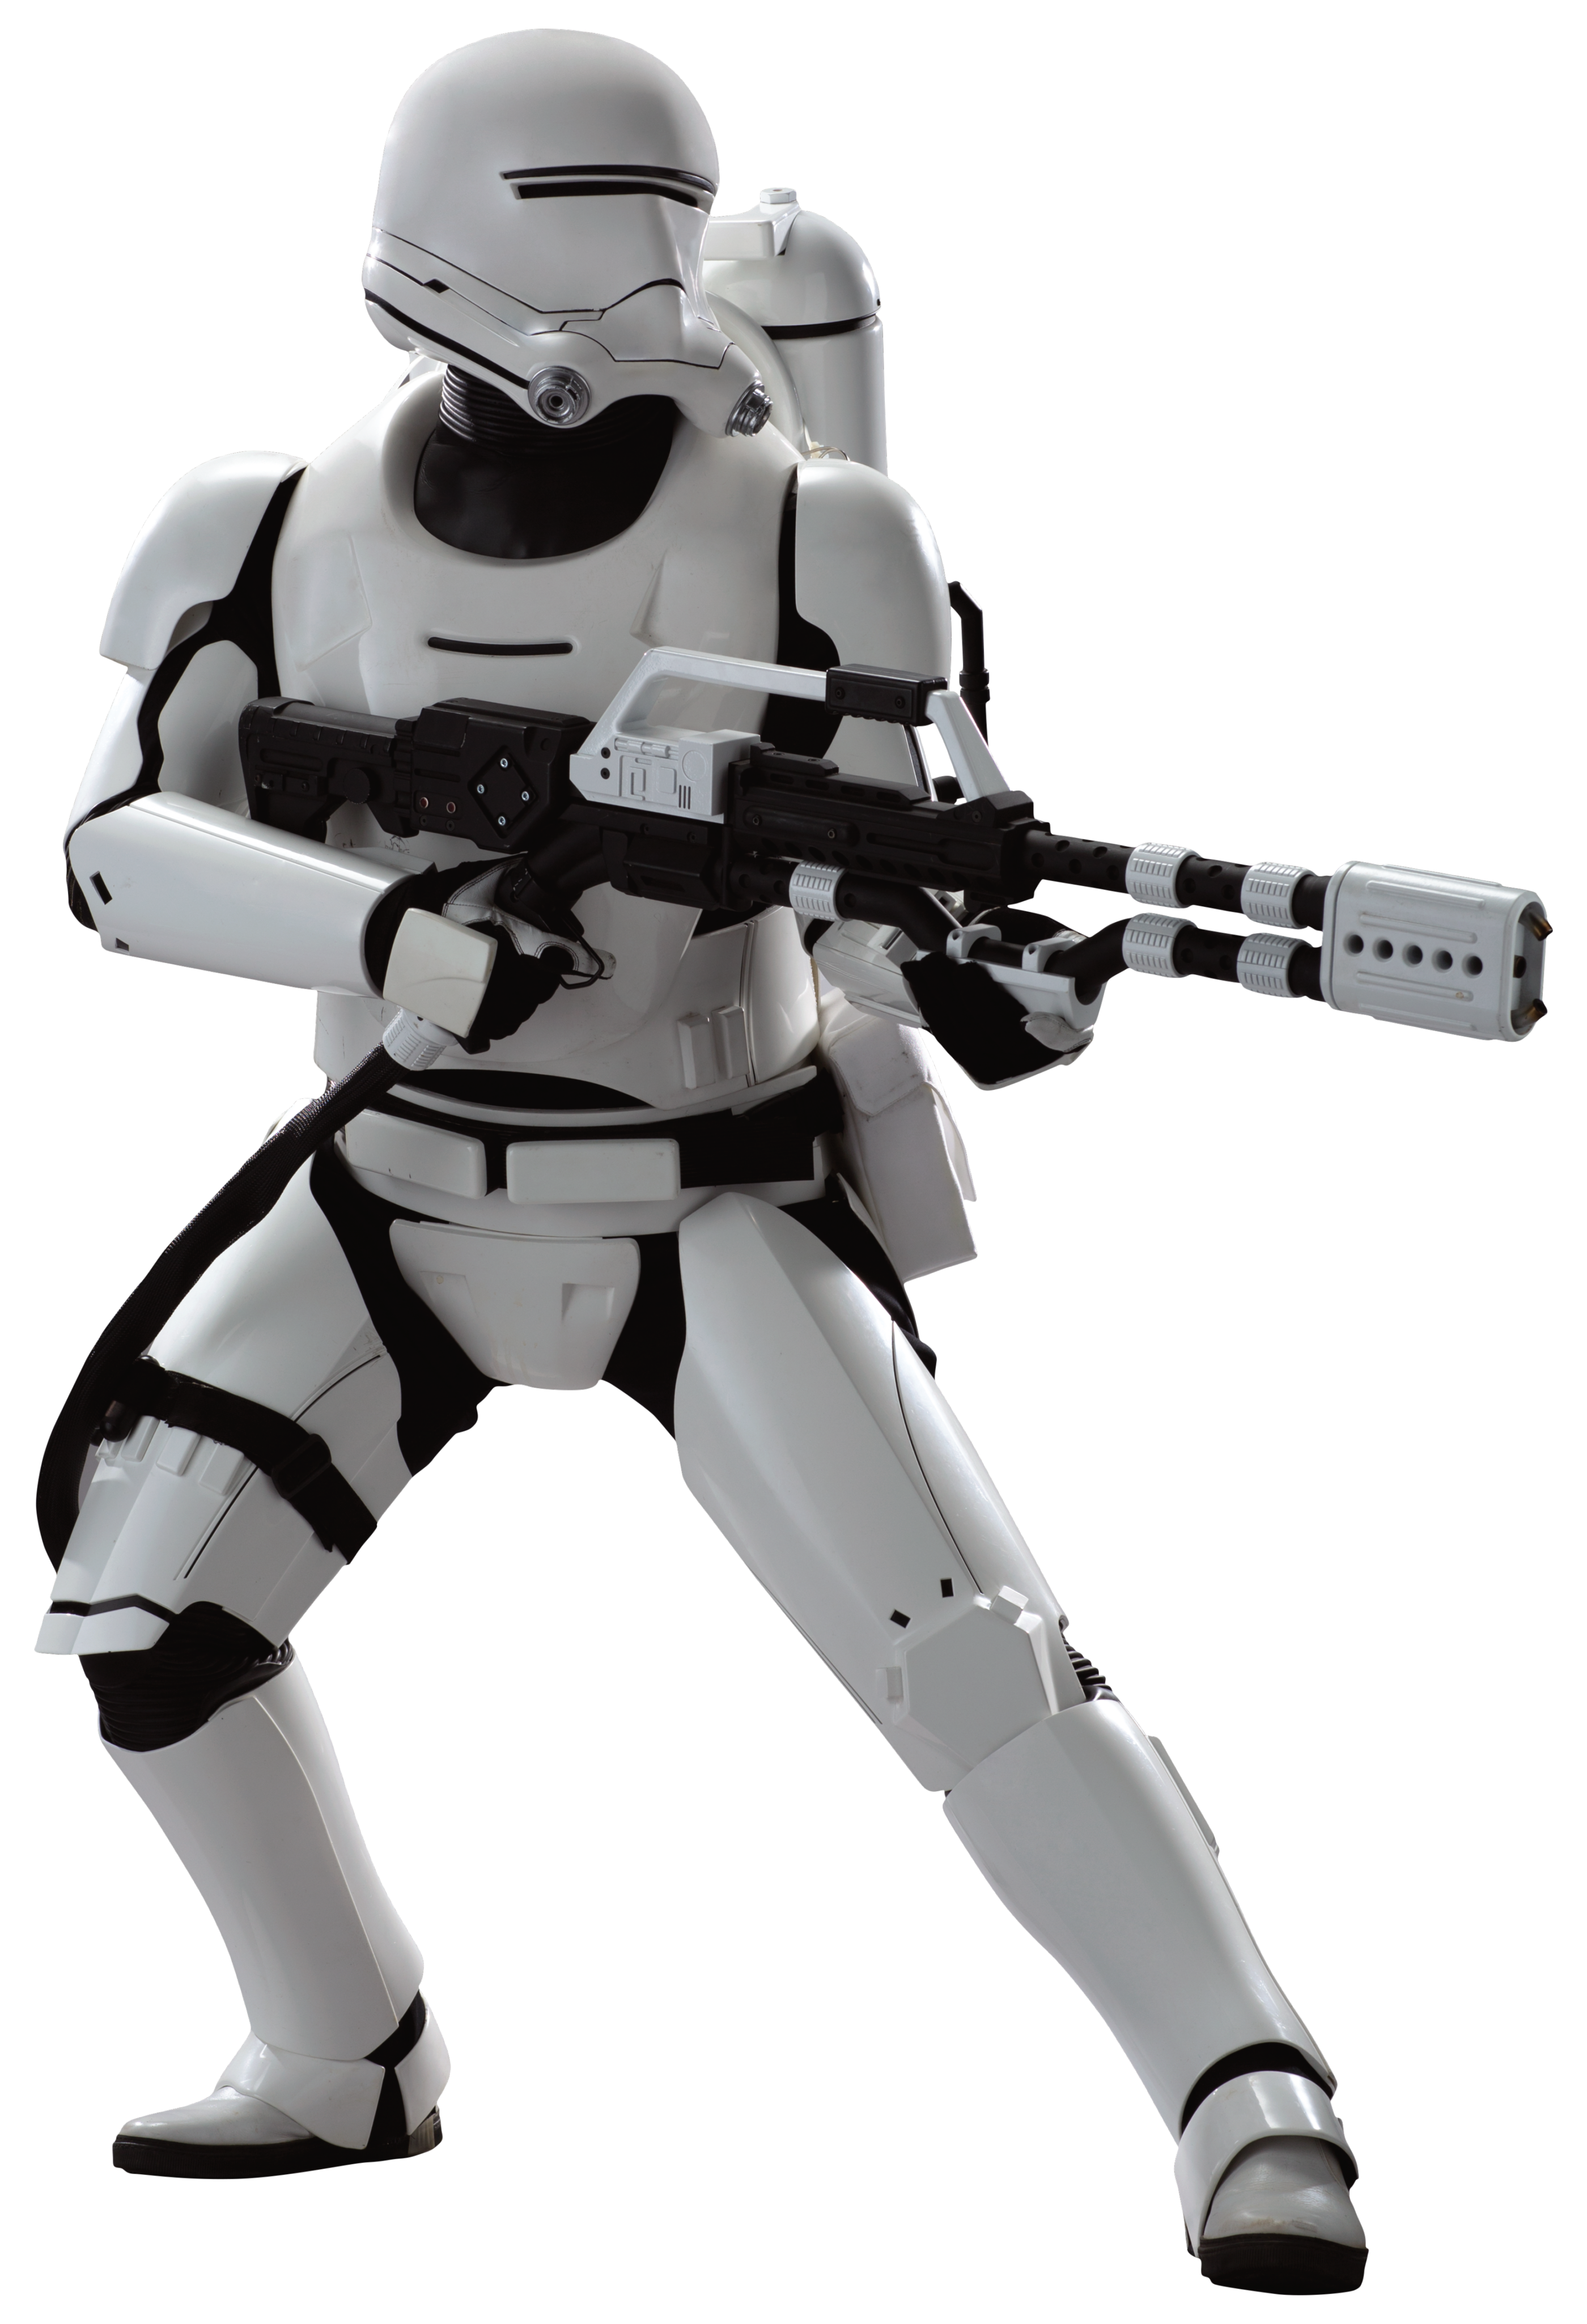 Toy Star Equipment Wars Ii Phasma Battlefront PNG Image